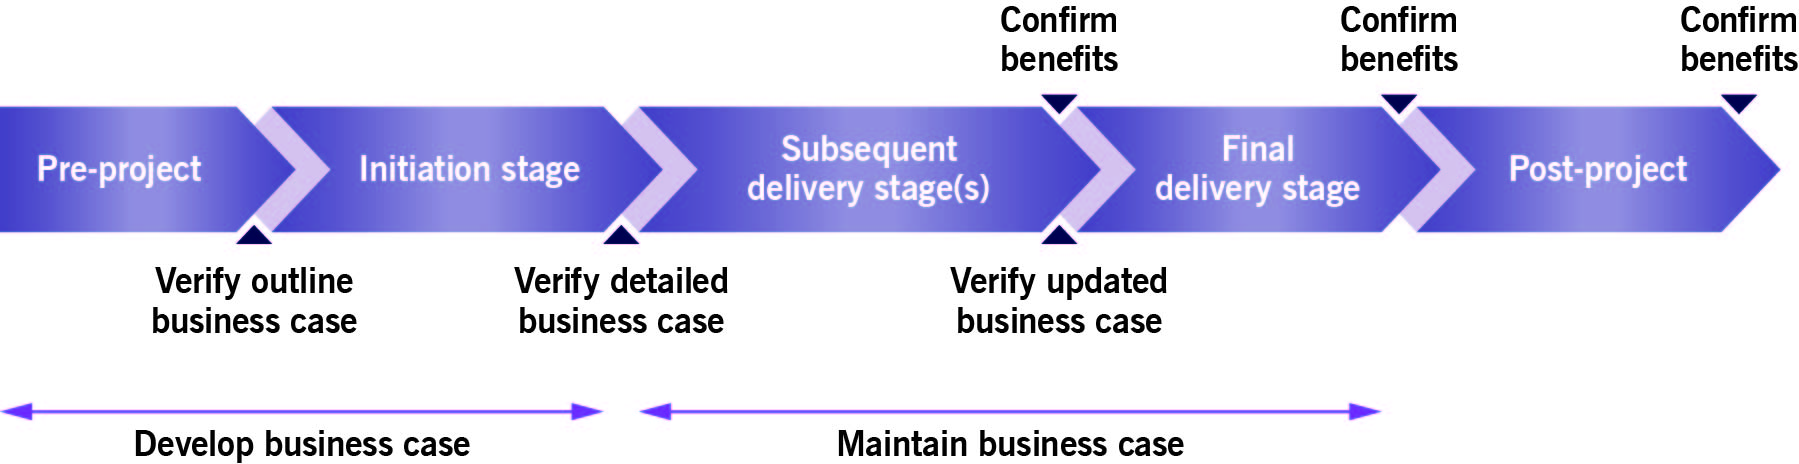 PRINCE2_Business-Case-development-path